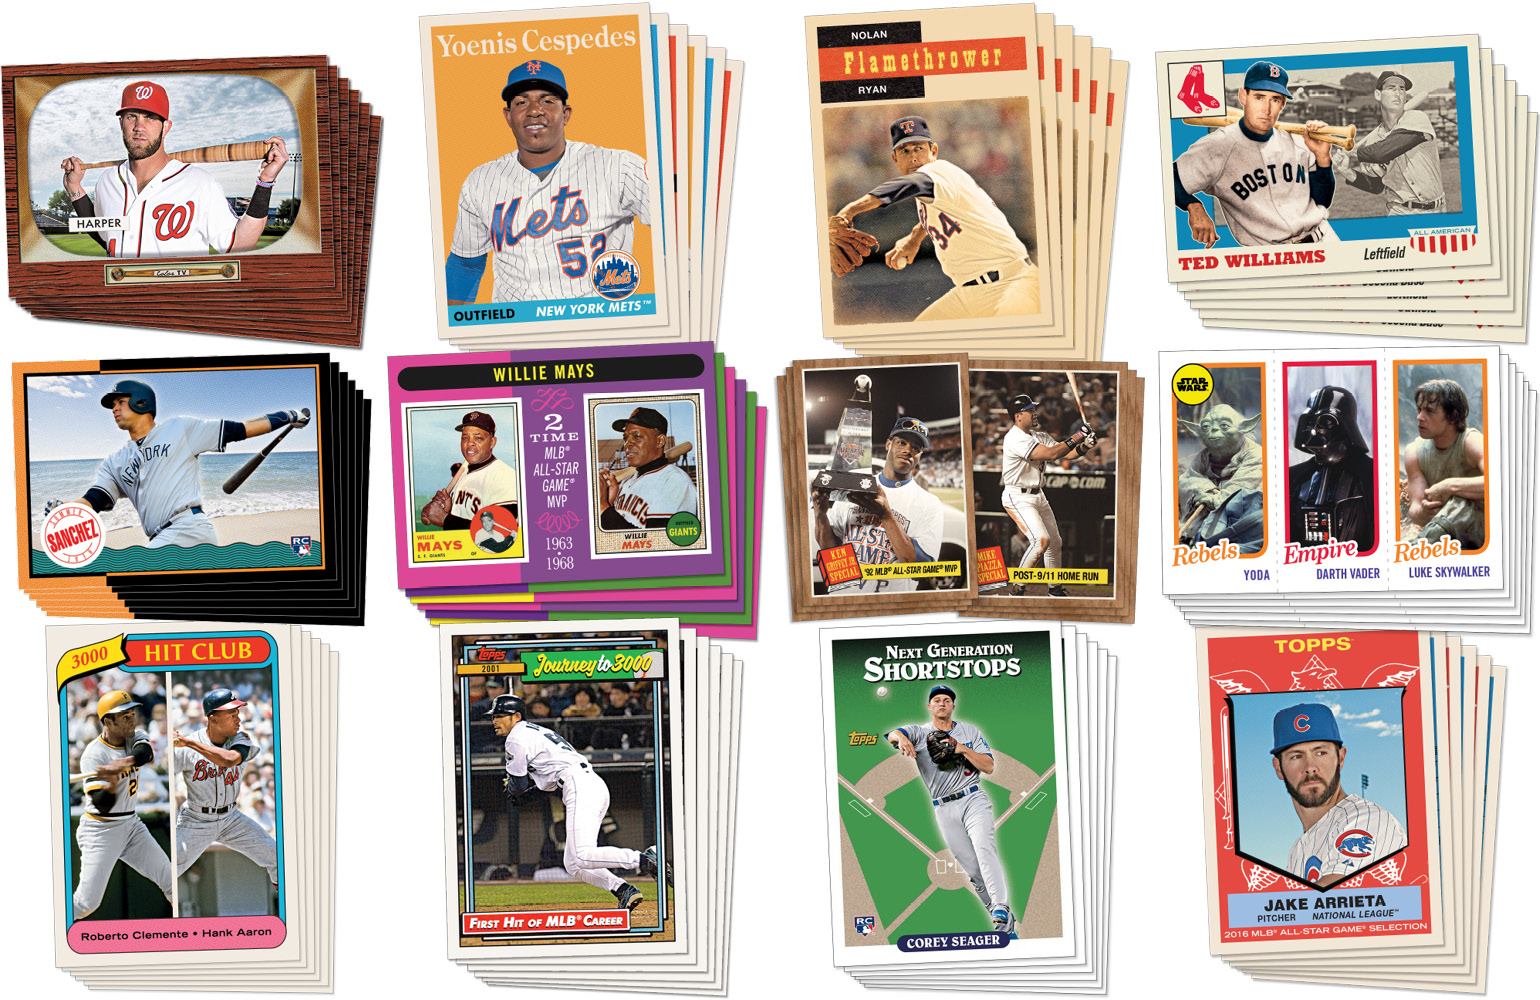 Topps Throwback Thursday